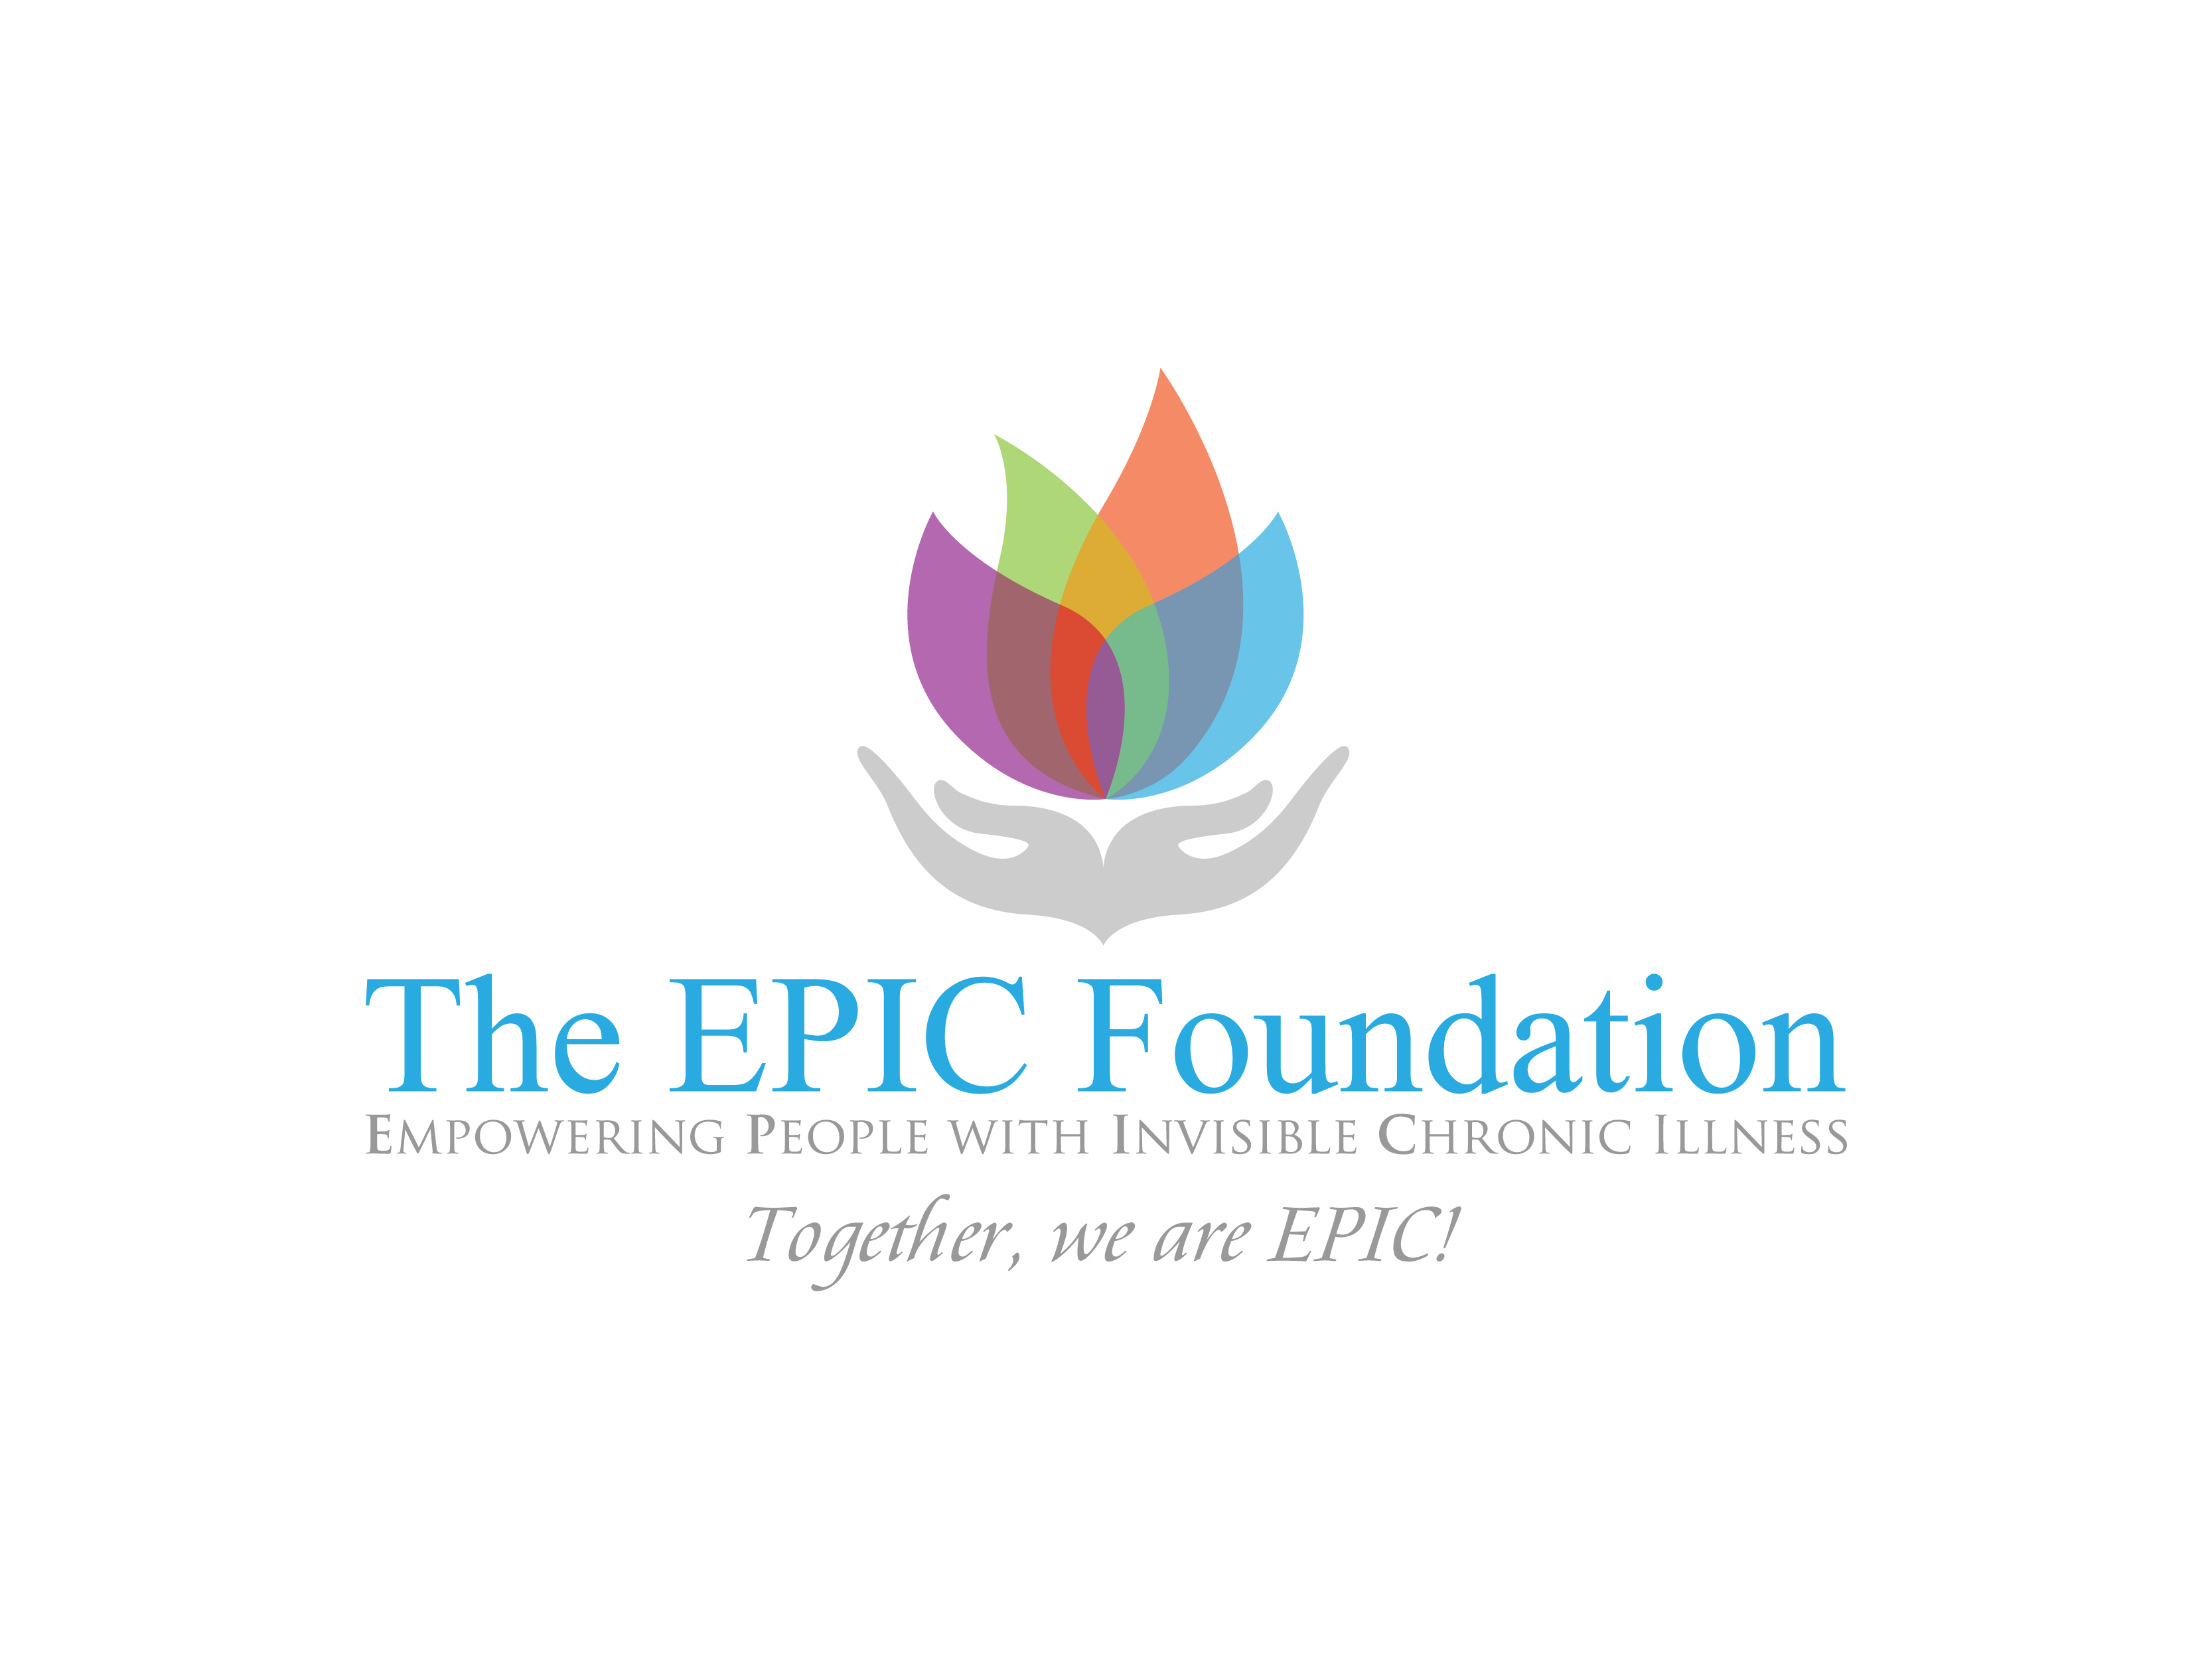 Epic Foundation